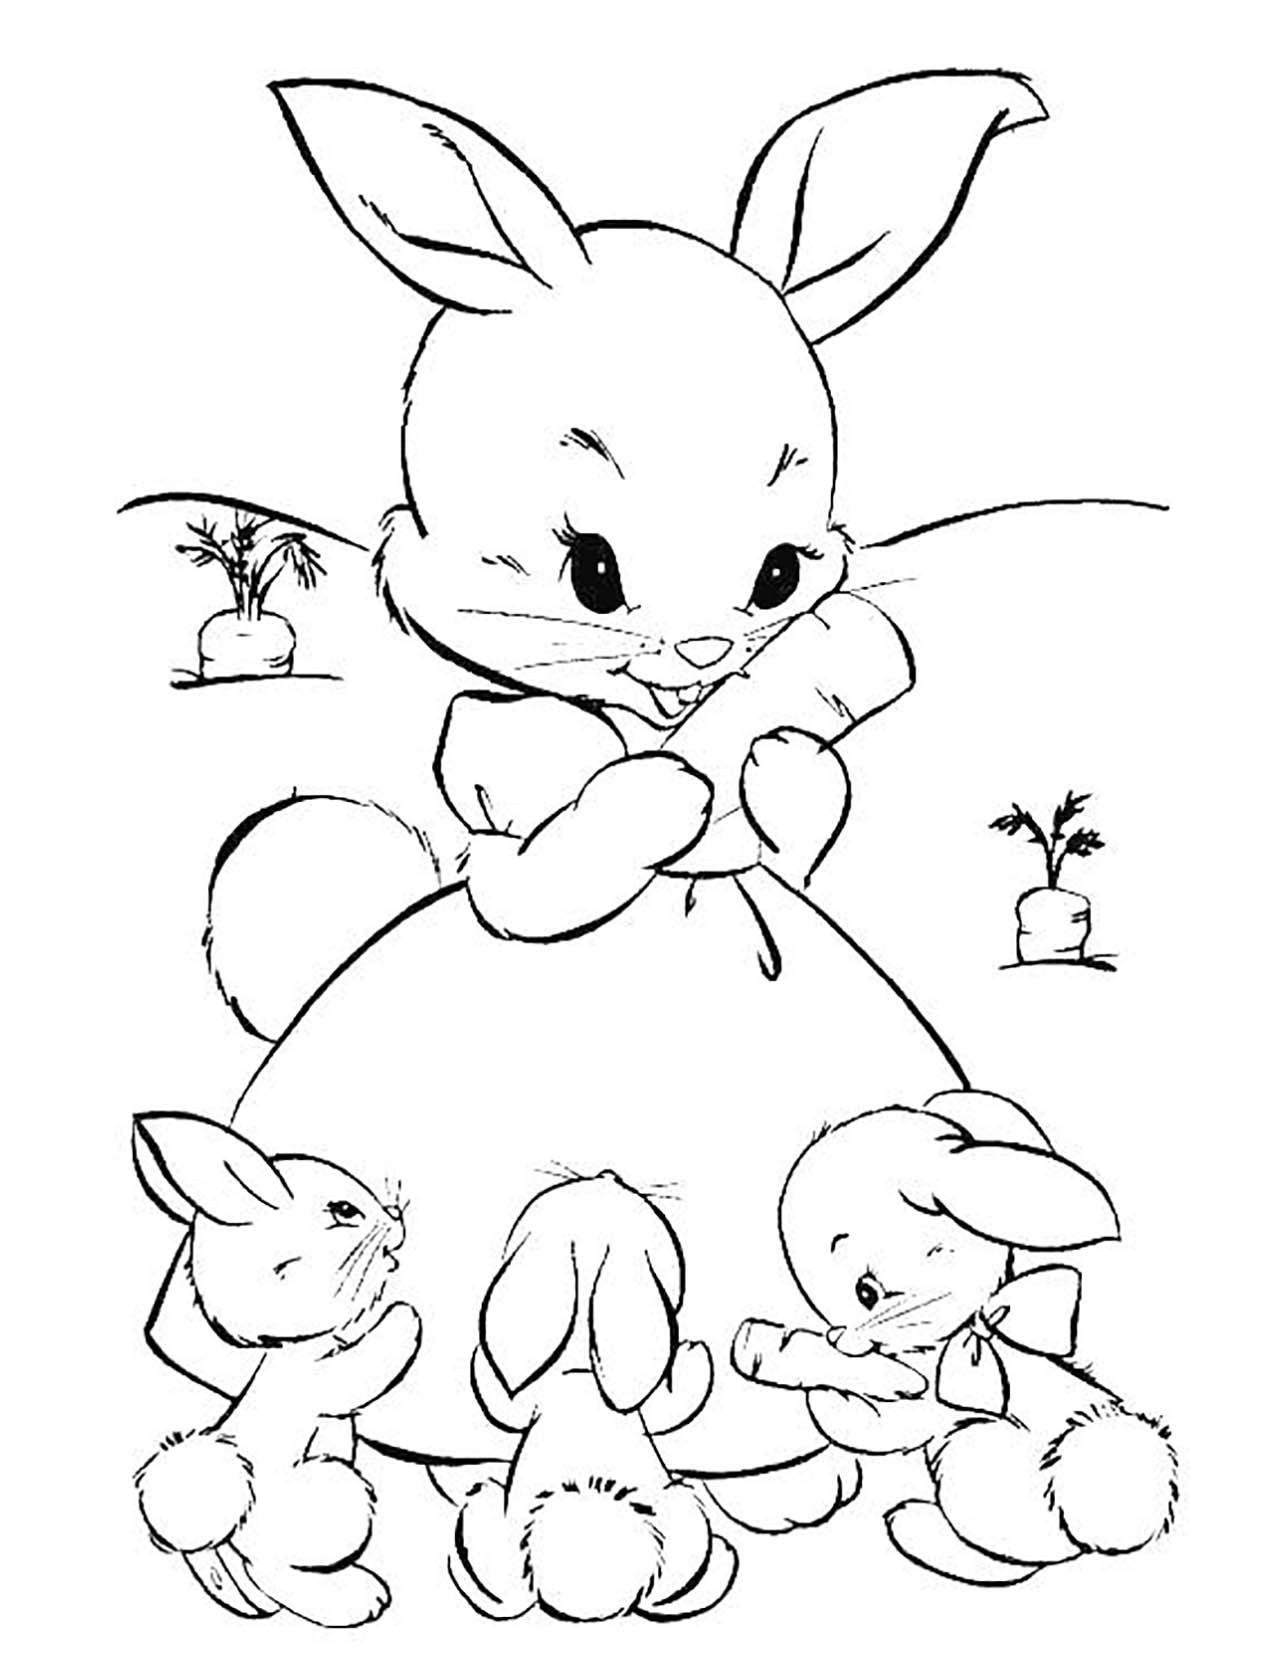 bunny coloring sheets free printable printable rabbit coloring pages for kids cool2bkids bunny printable sheets free coloring